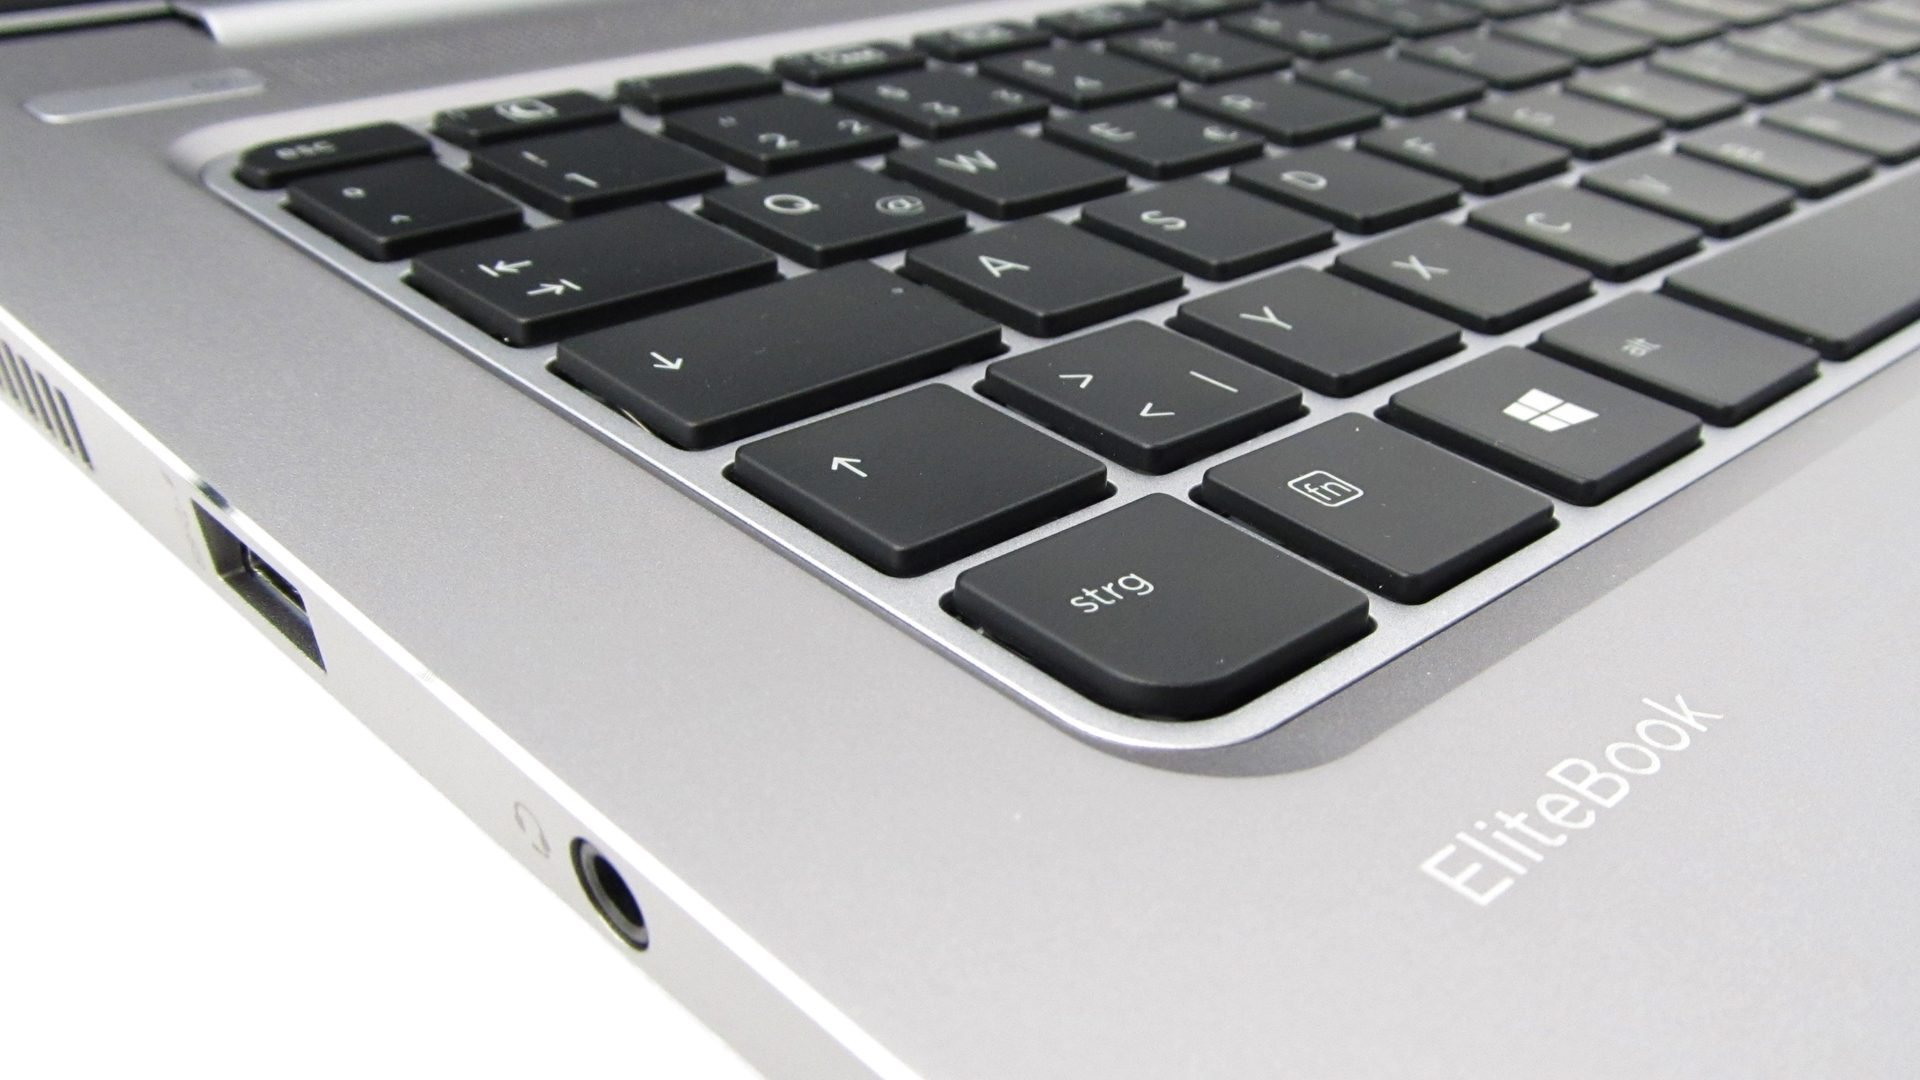 HP EliteBook 1040 G3 Z2U95ES Tastatur_3